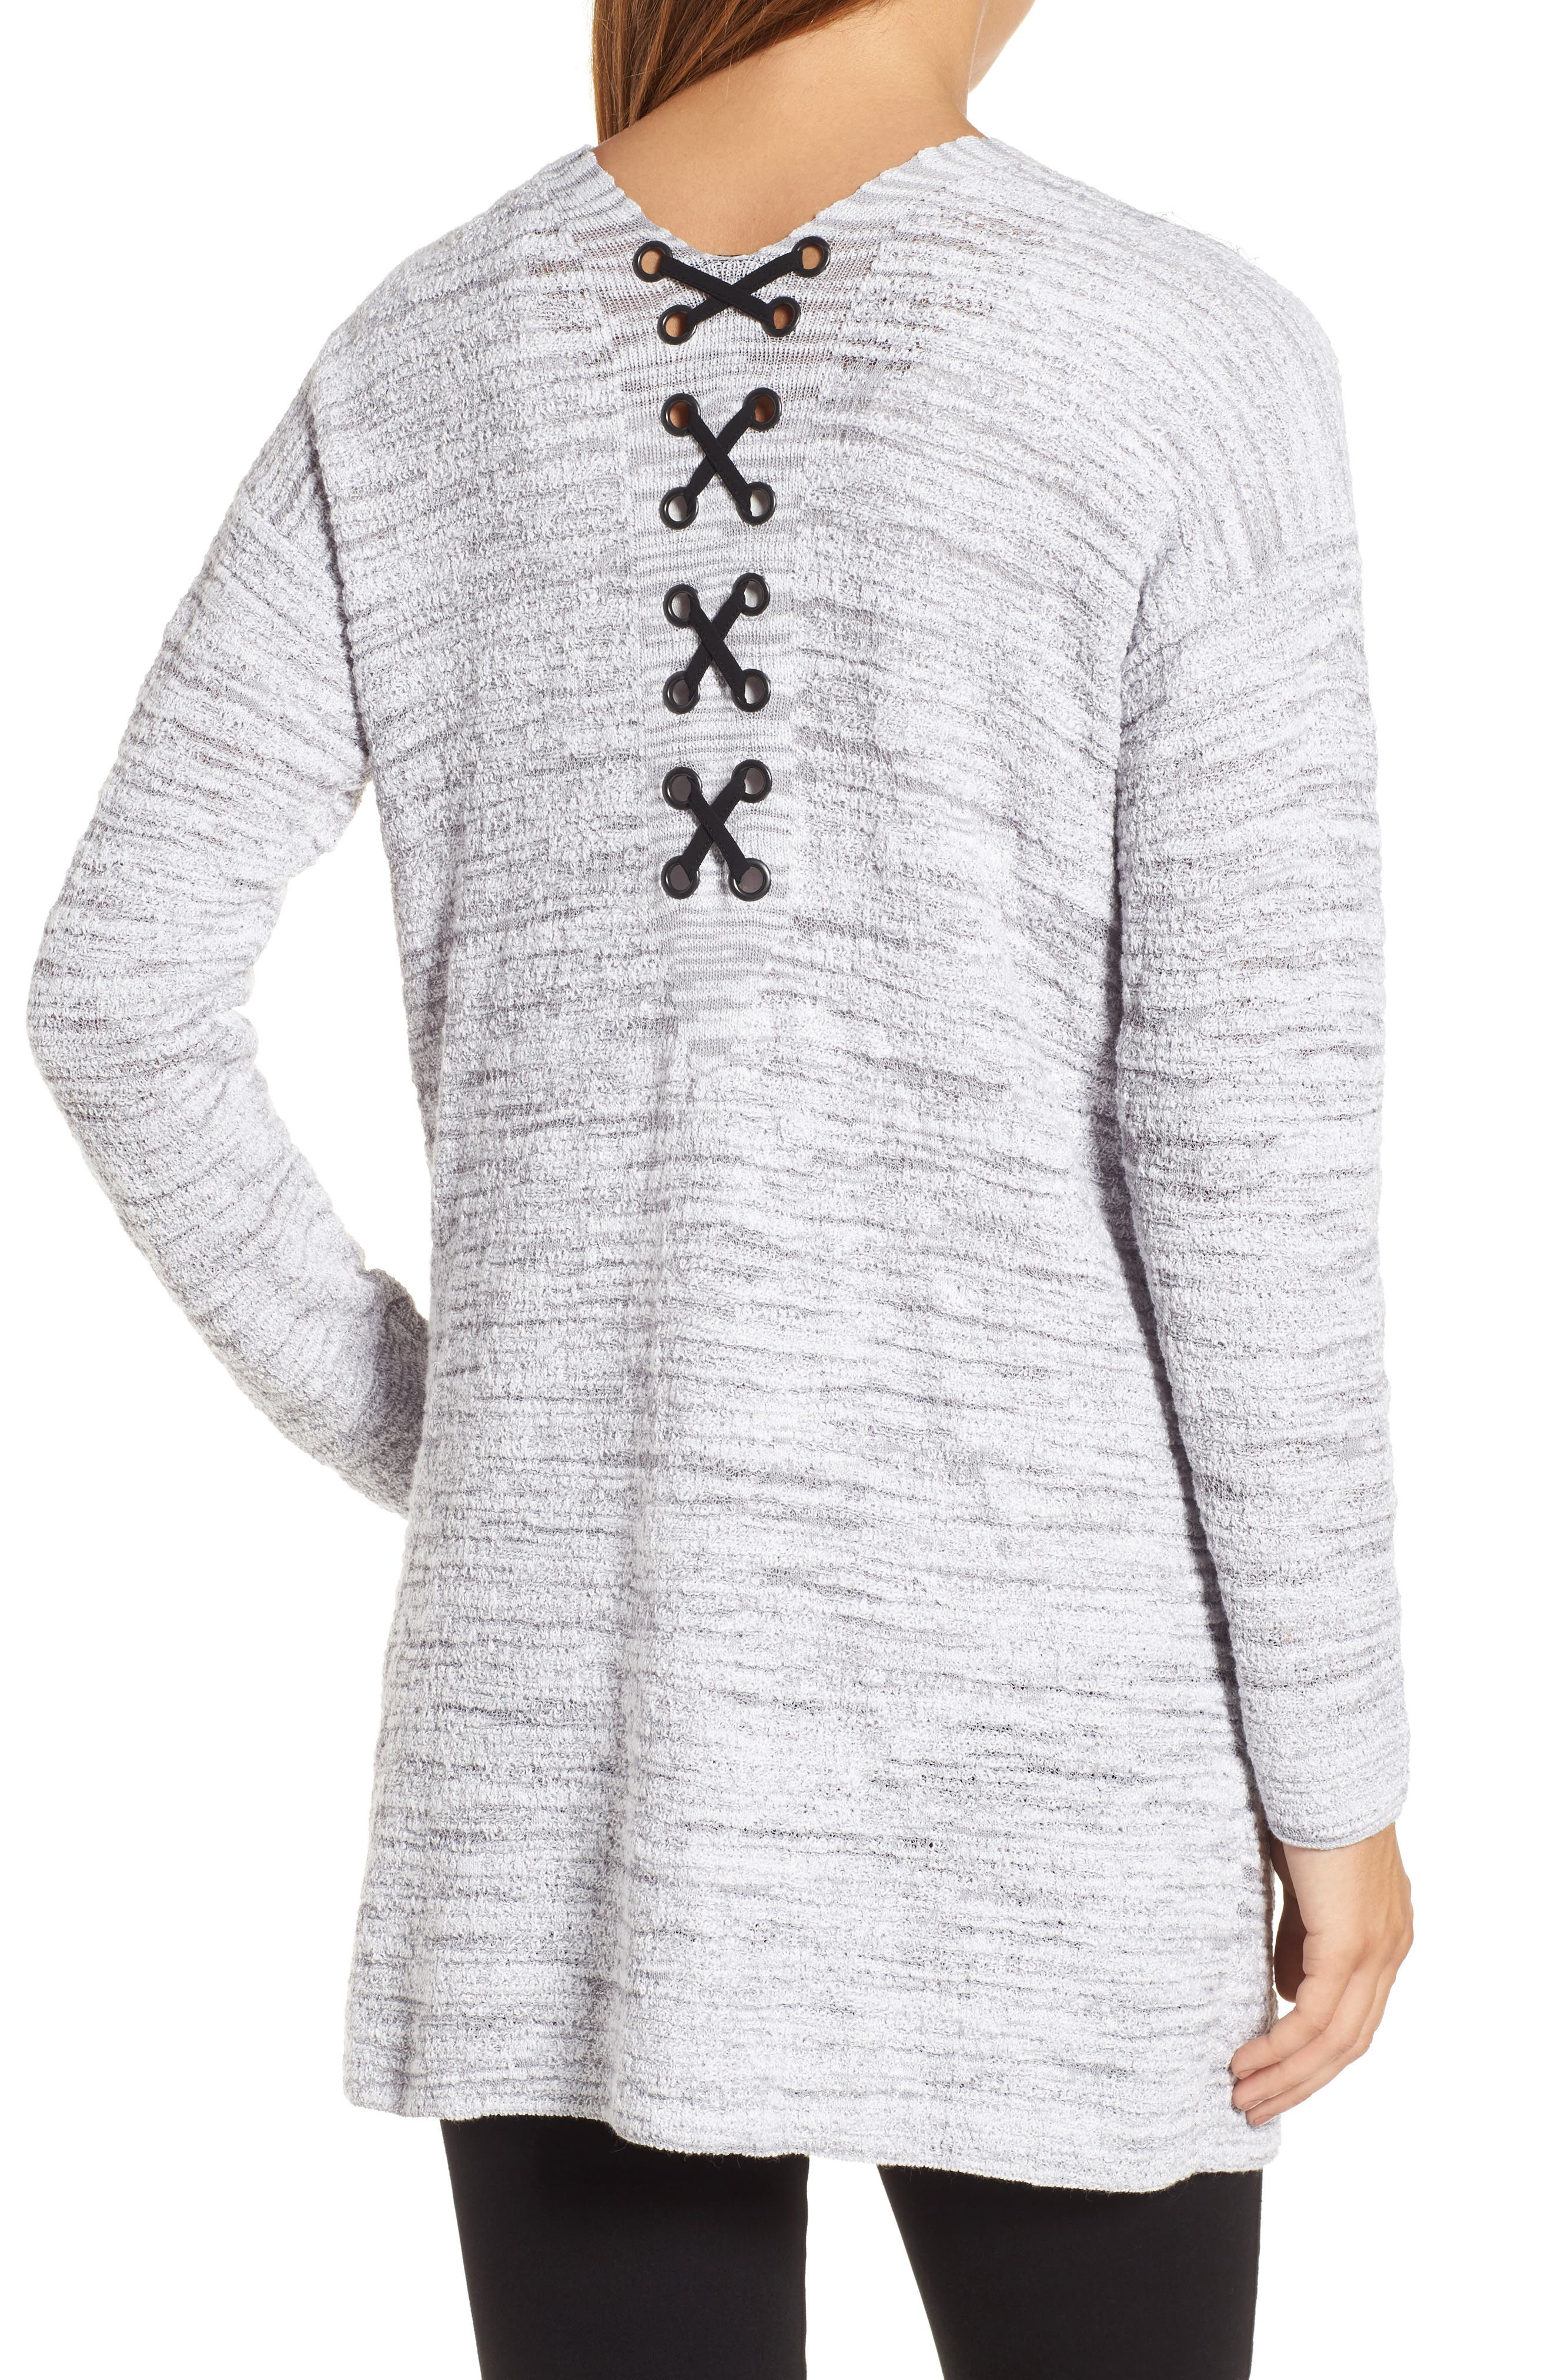 Lace It Back Cardigan,                             Alternate thumbnail 2, color,                             Icy Grey